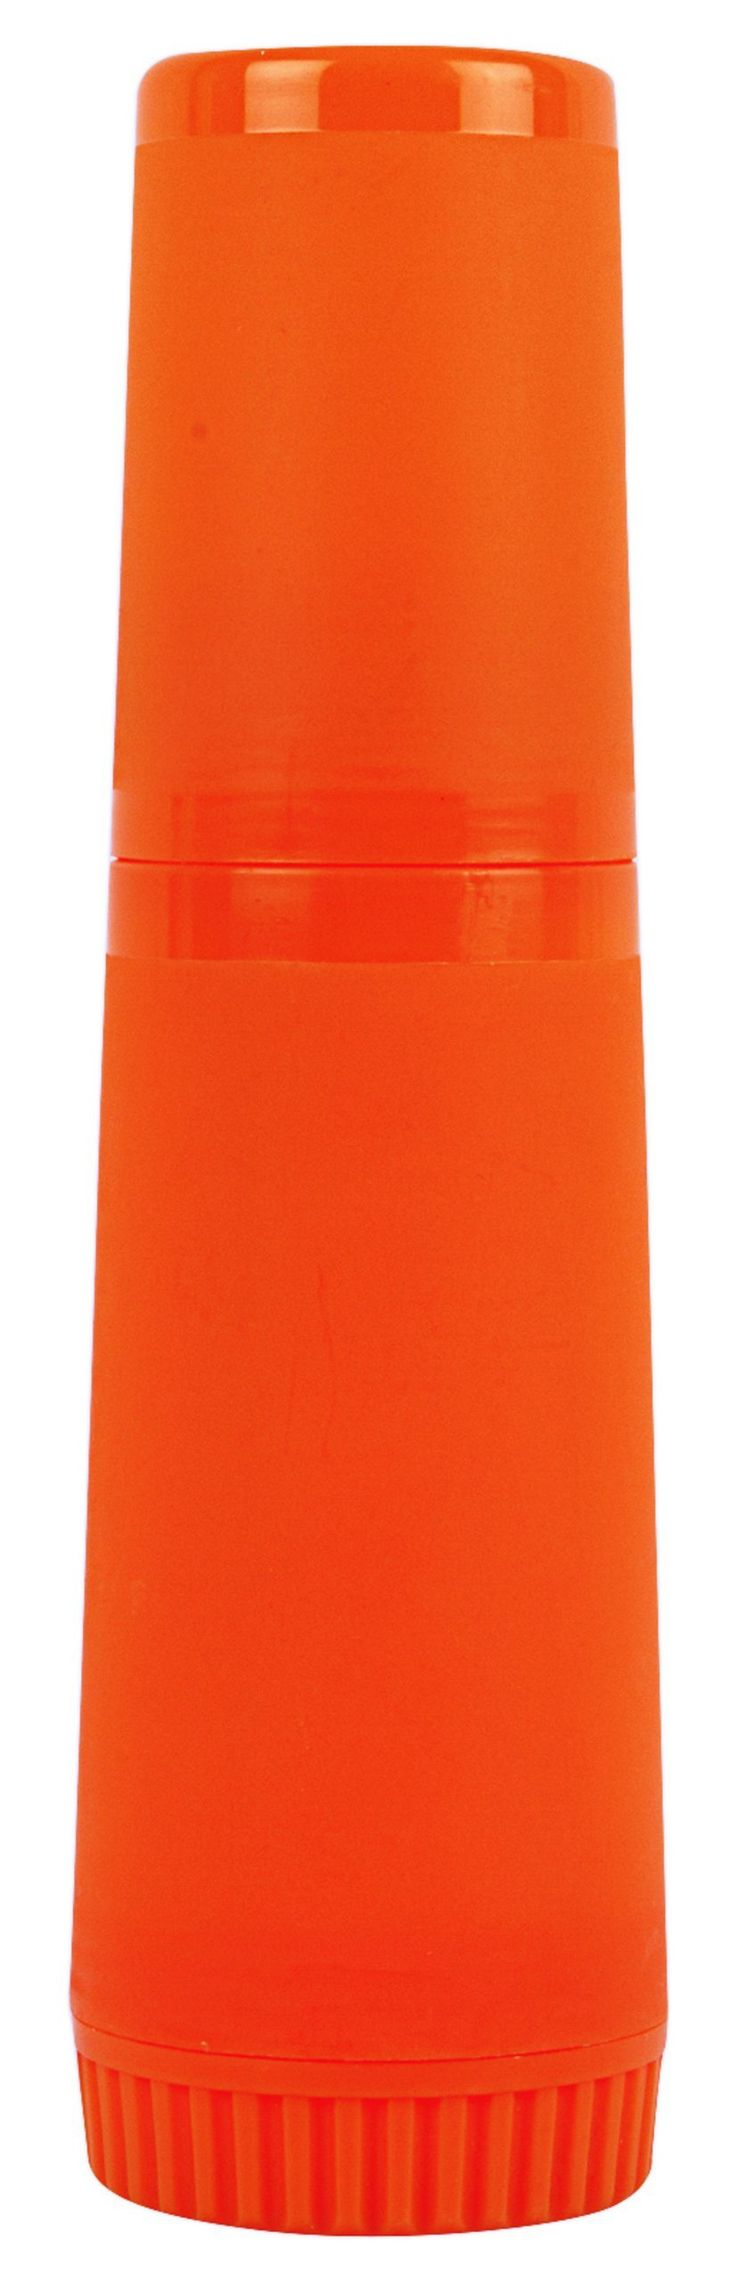 Farlin 250CC Insulated Feeding Bottle Orange. Farlin insulated feeding bottle features two thermos bottles with different materials. The inner bottle is made from polycarbonate resin which is FDA approved. The outer bottle is made from durable polycarbonate material. This insulated feeding bottle is very convenient for traveling and late night feeding.